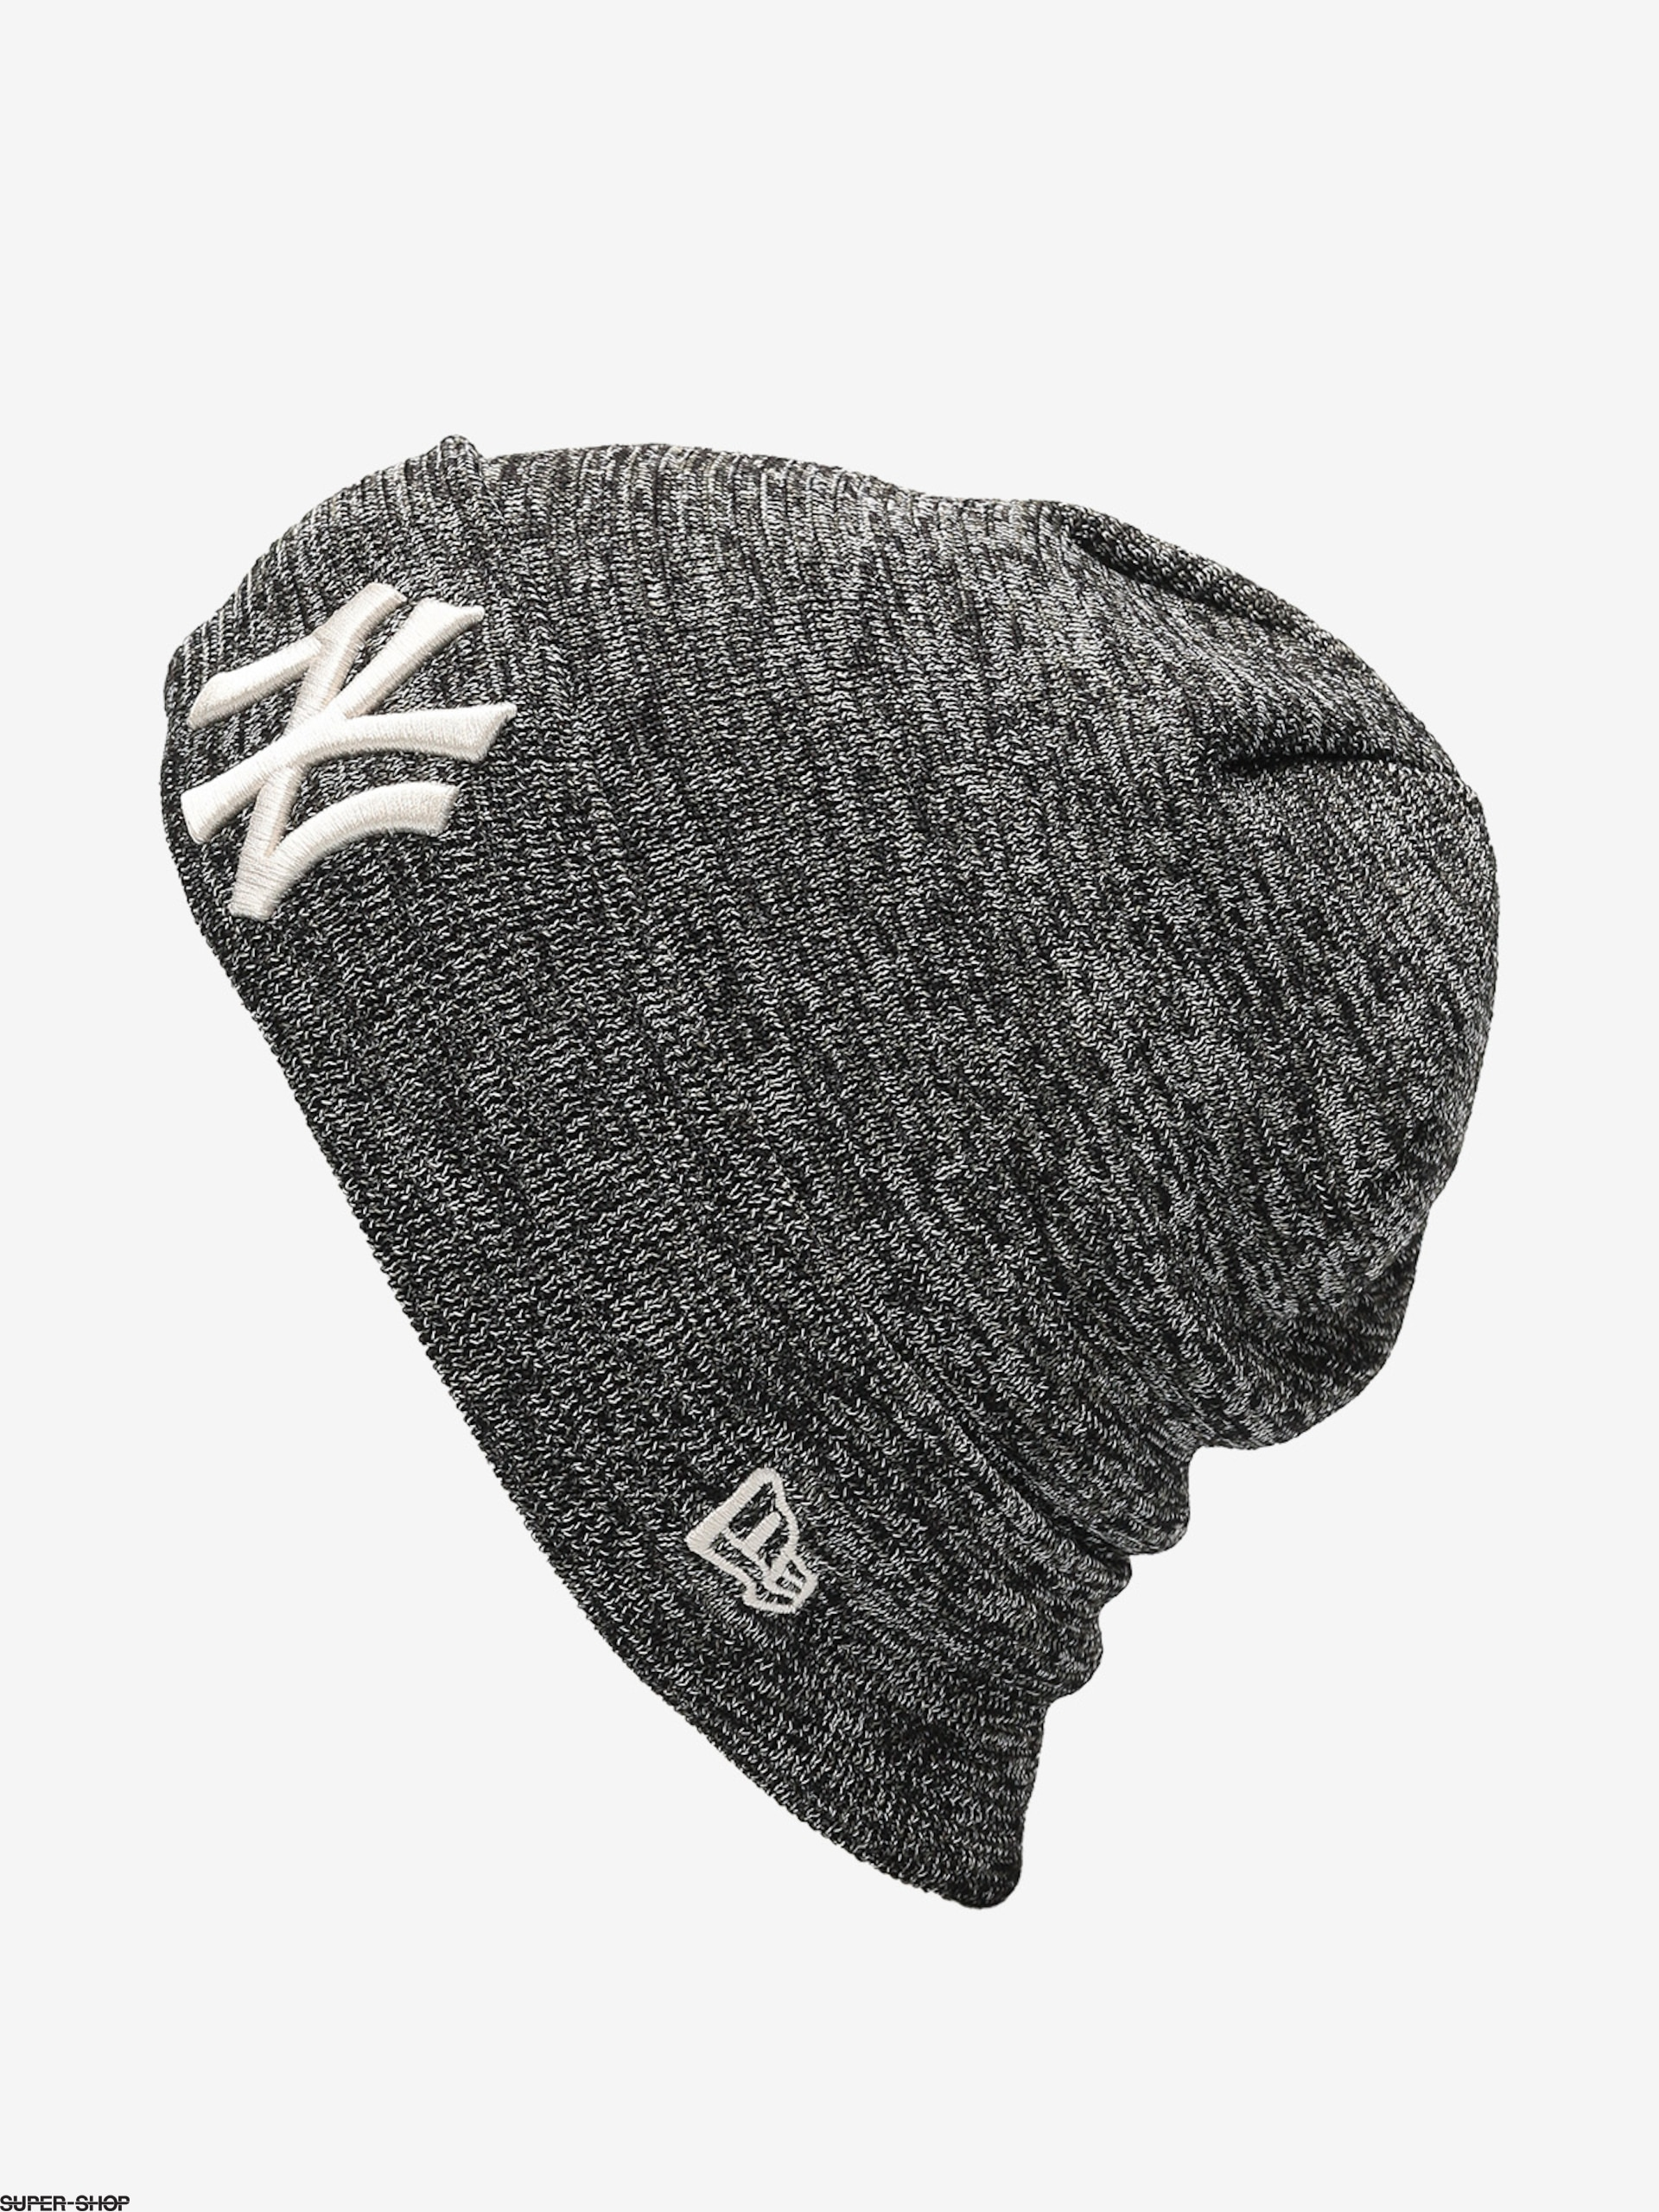 994163-w1920-new-era-engineered-fit-cuff-knit-beanie-new-york-yankees -blknovsfp.jpg e326c6c16d93